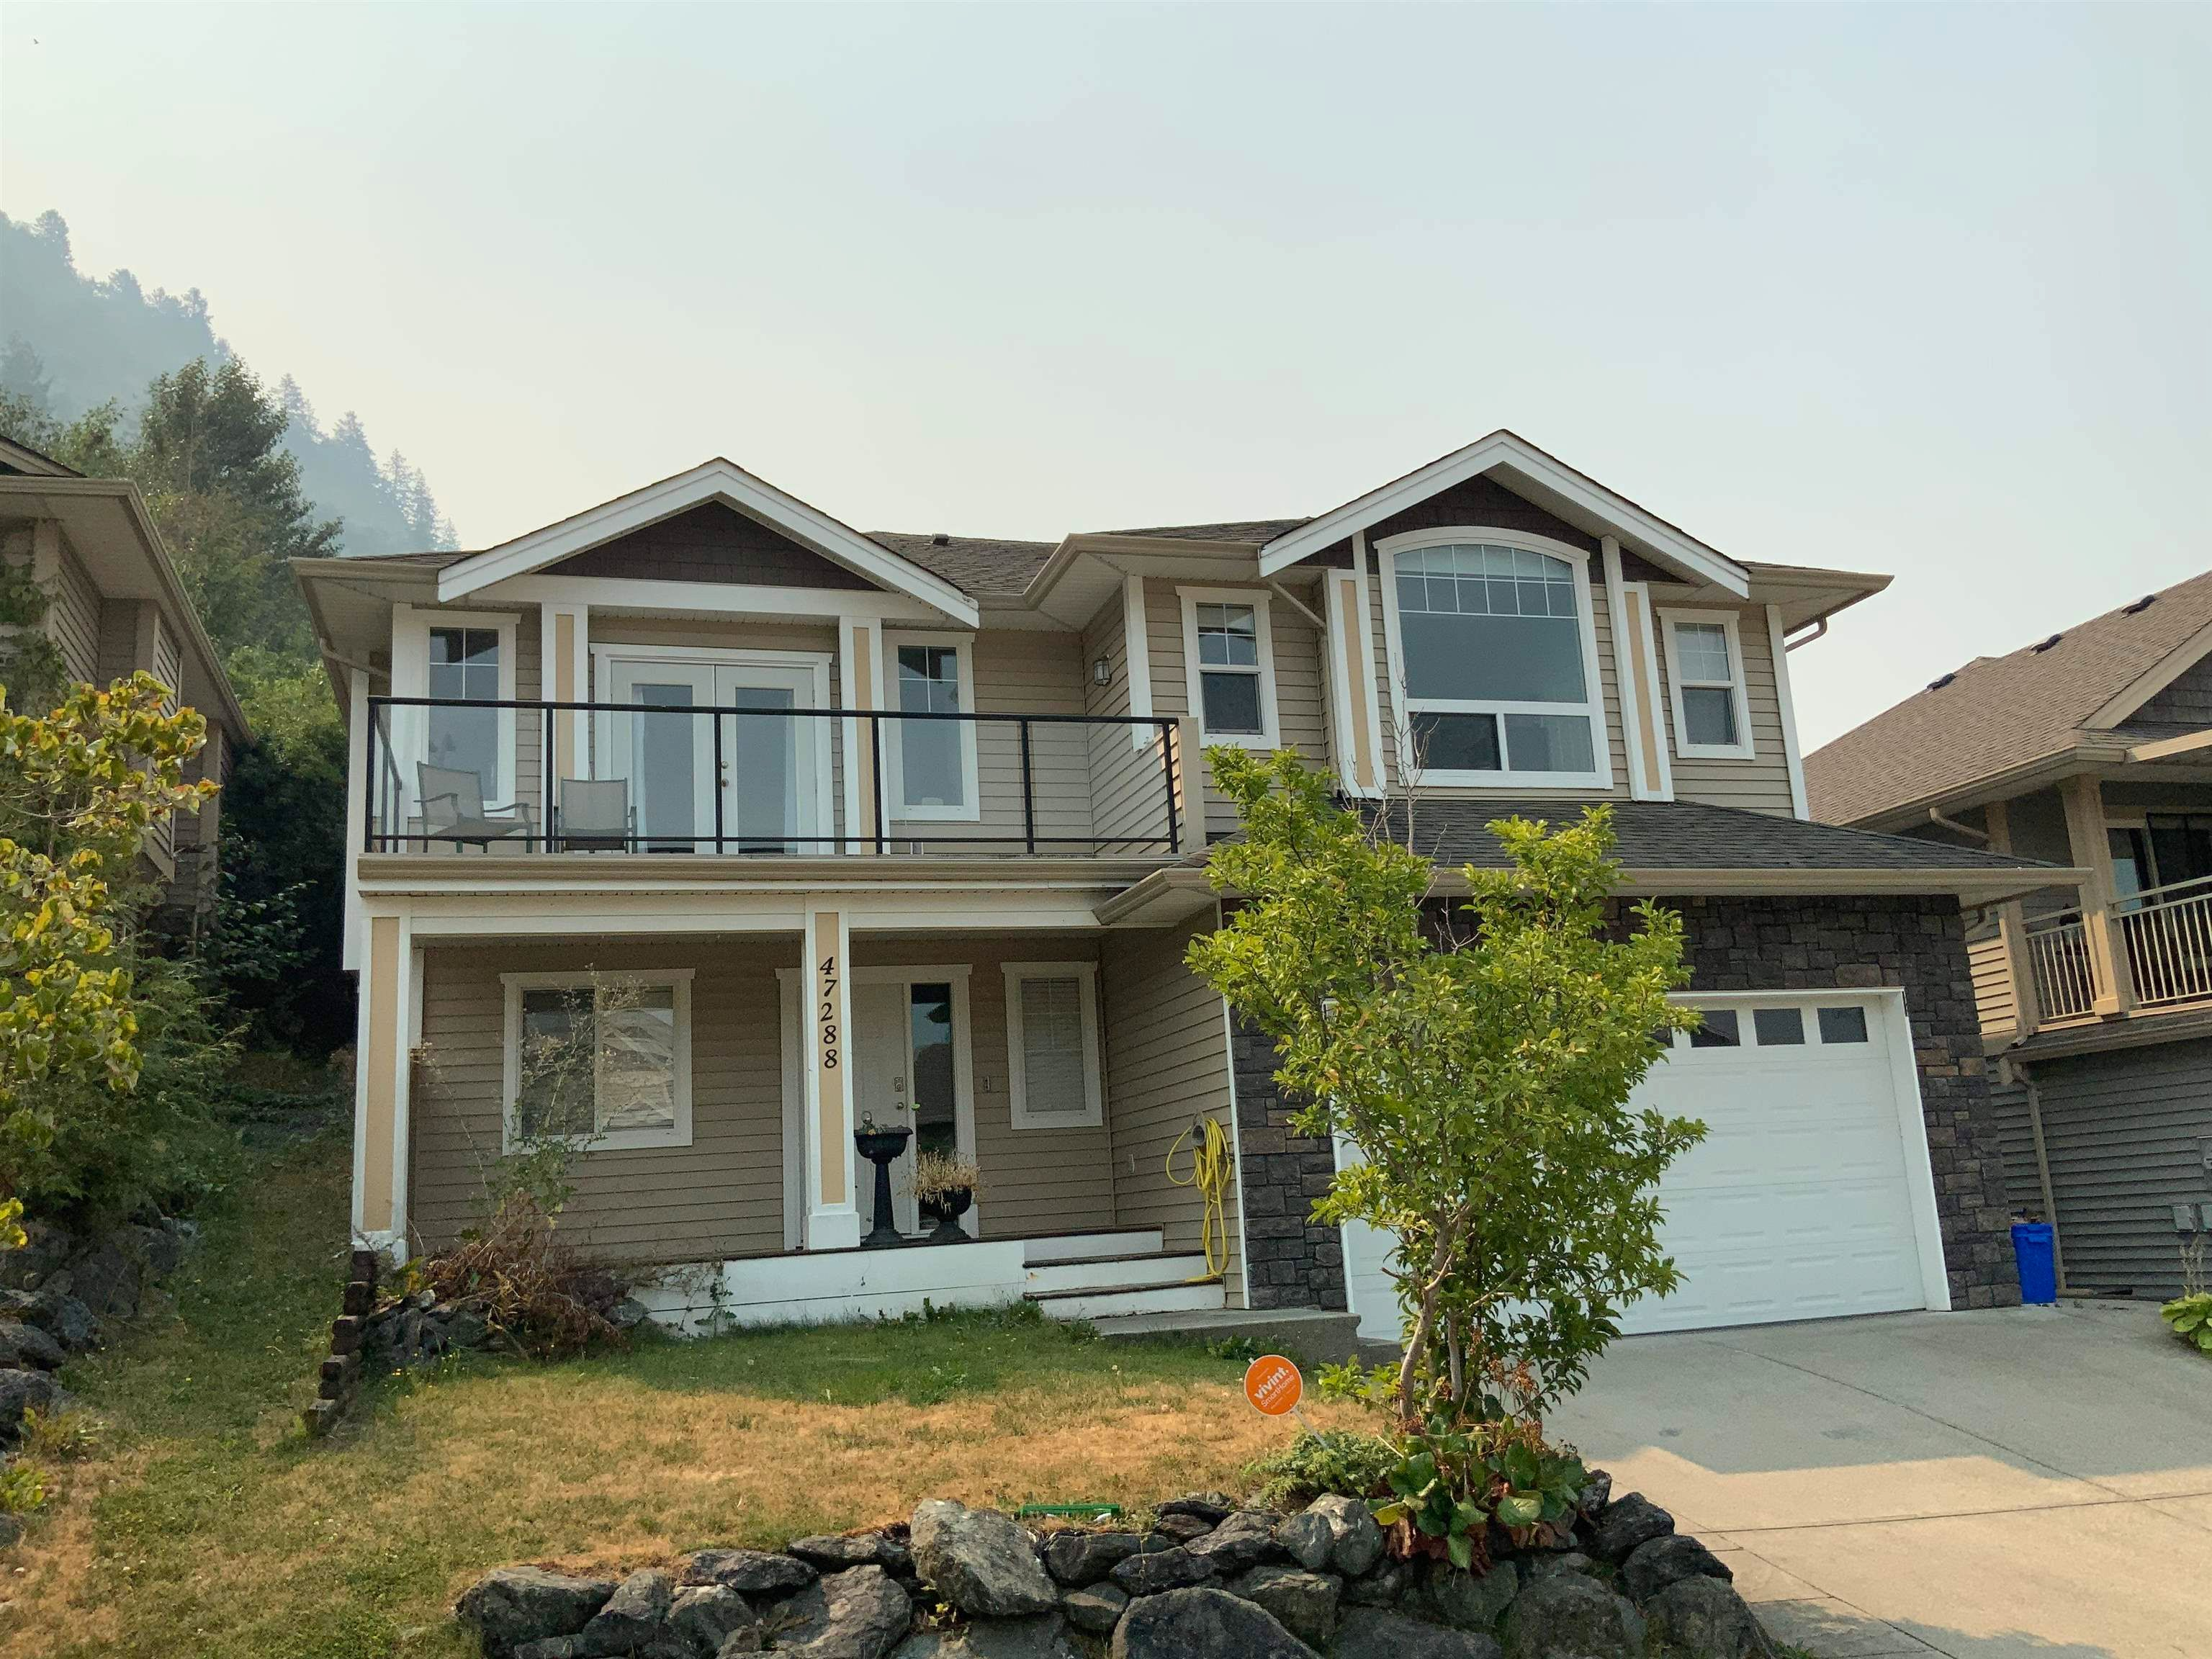 Main Photo: 47288 BREWSTER Place in Chilliwack: Promontory House for sale (Sardis)  : MLS®# R2609657